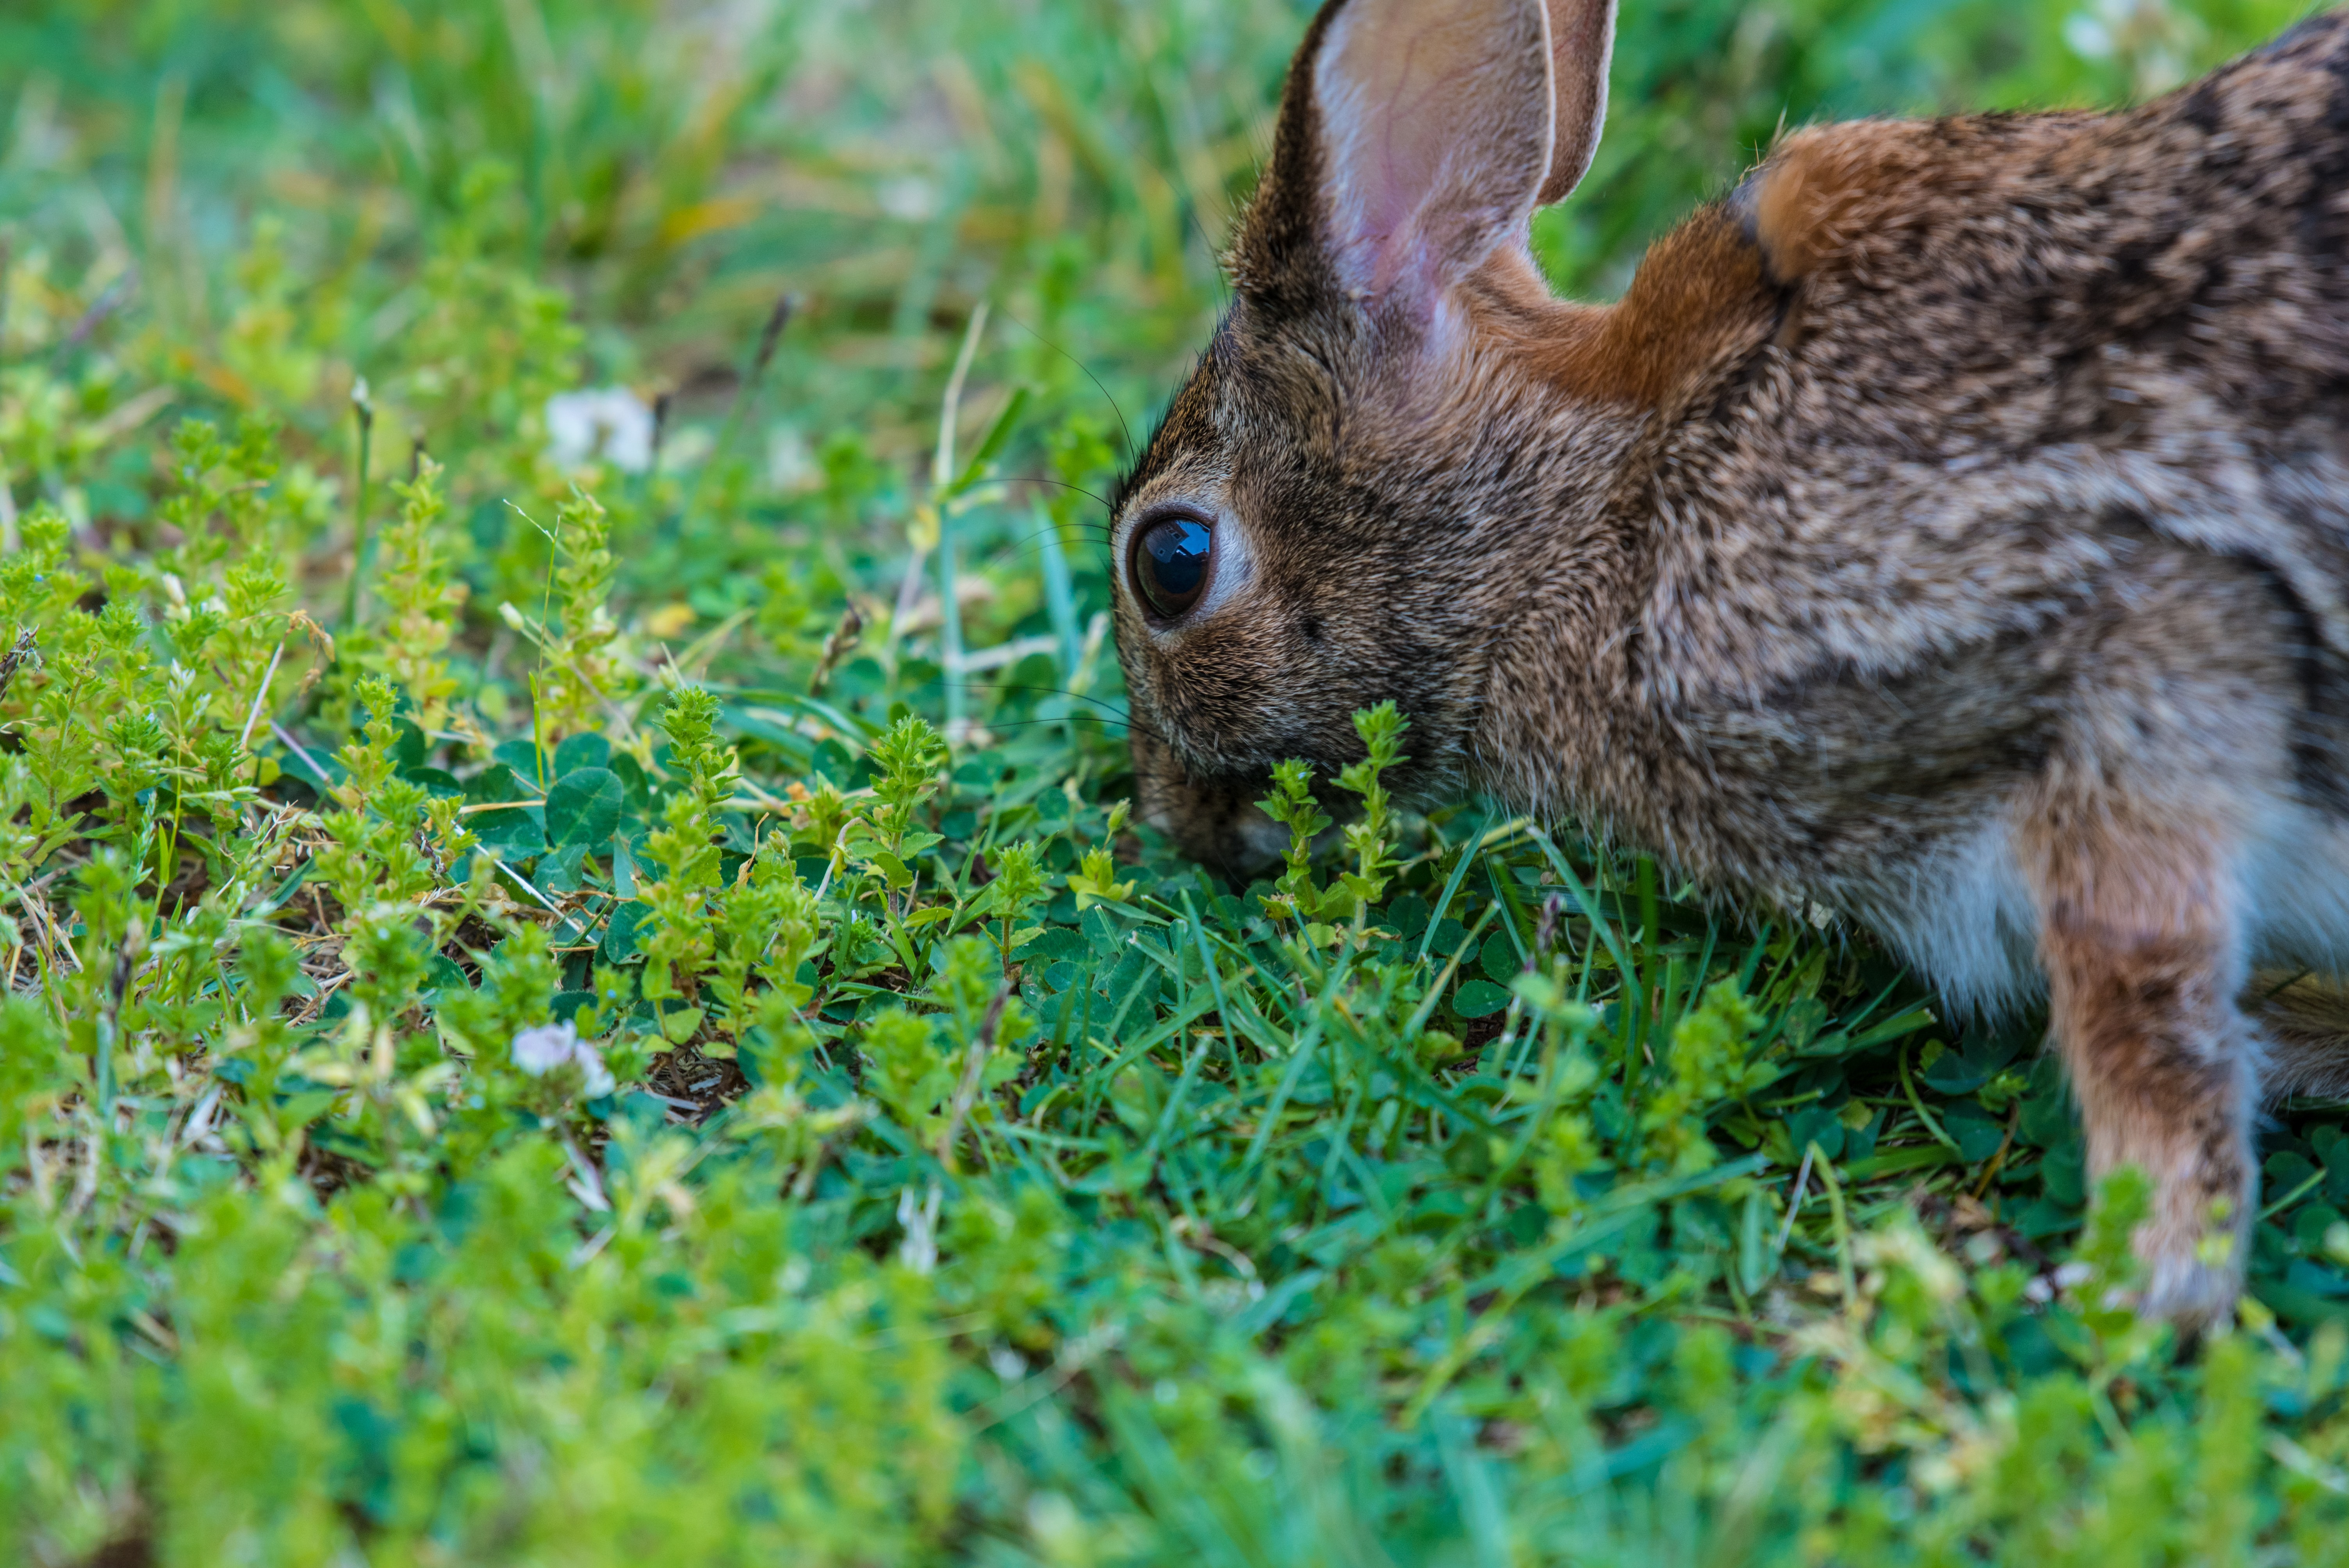 brown rabbit eating green grass at daytime